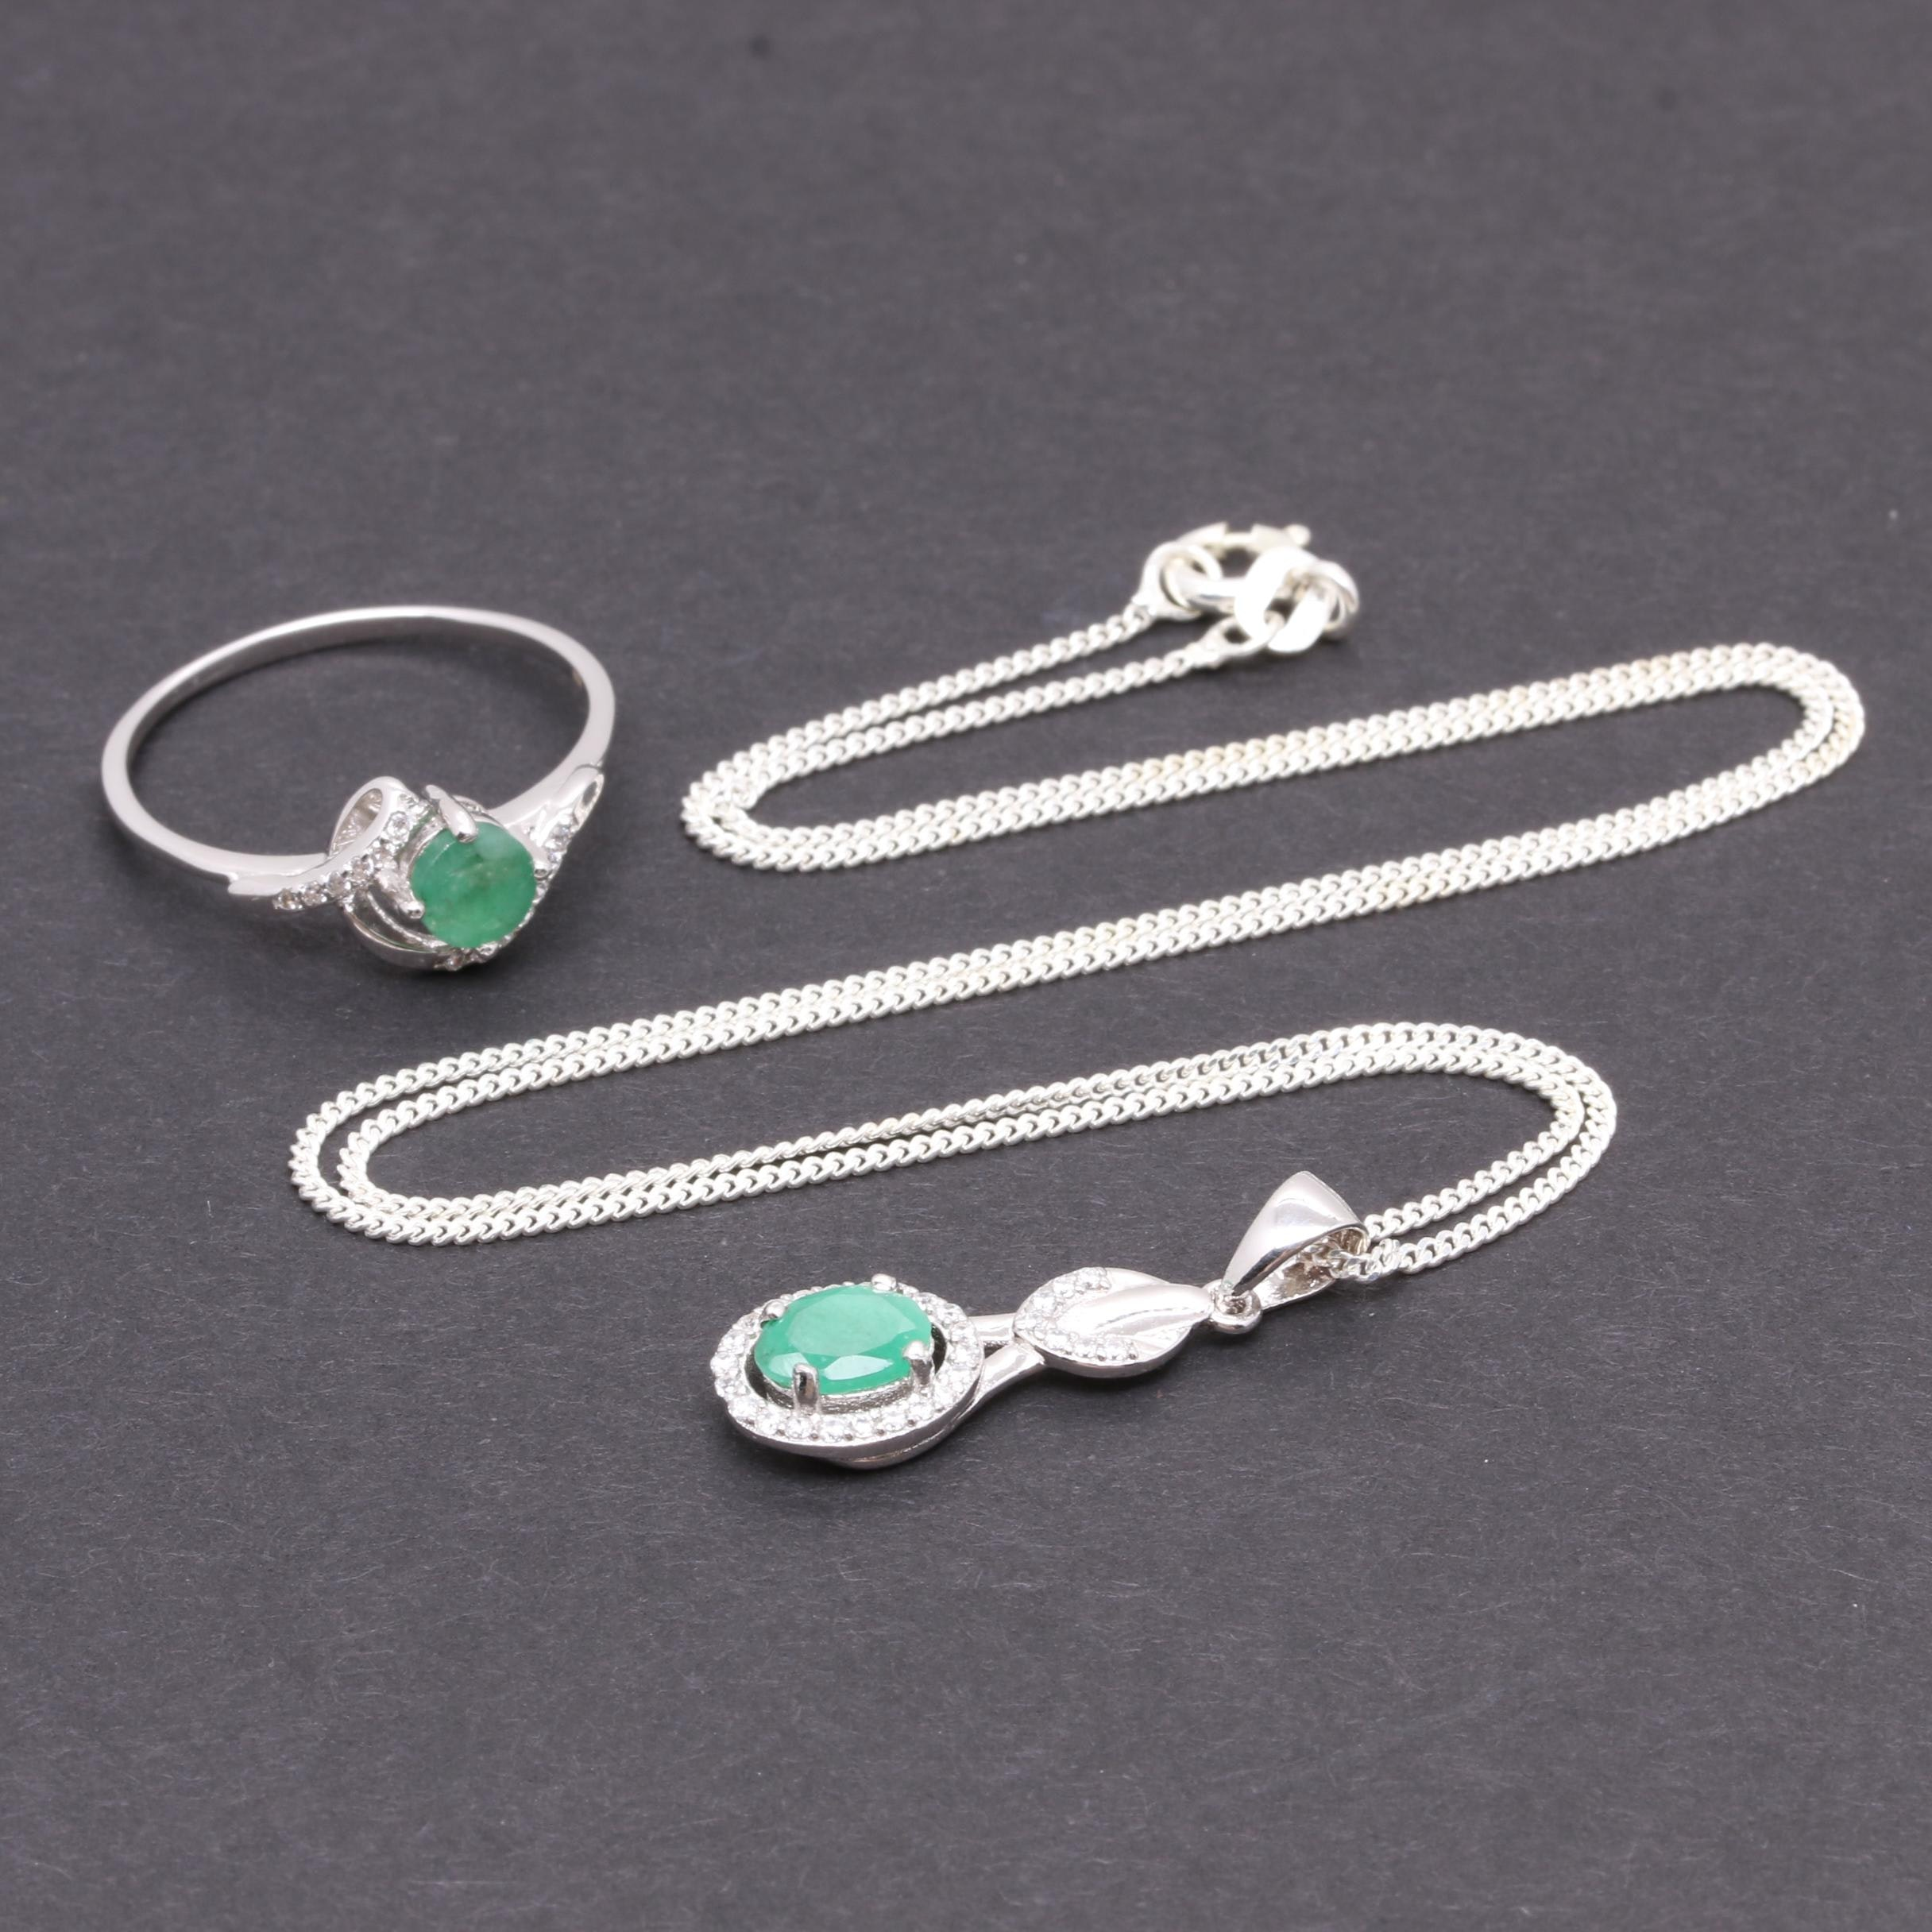 Sterling Silver and Emerald Ring and Pendant Necklace